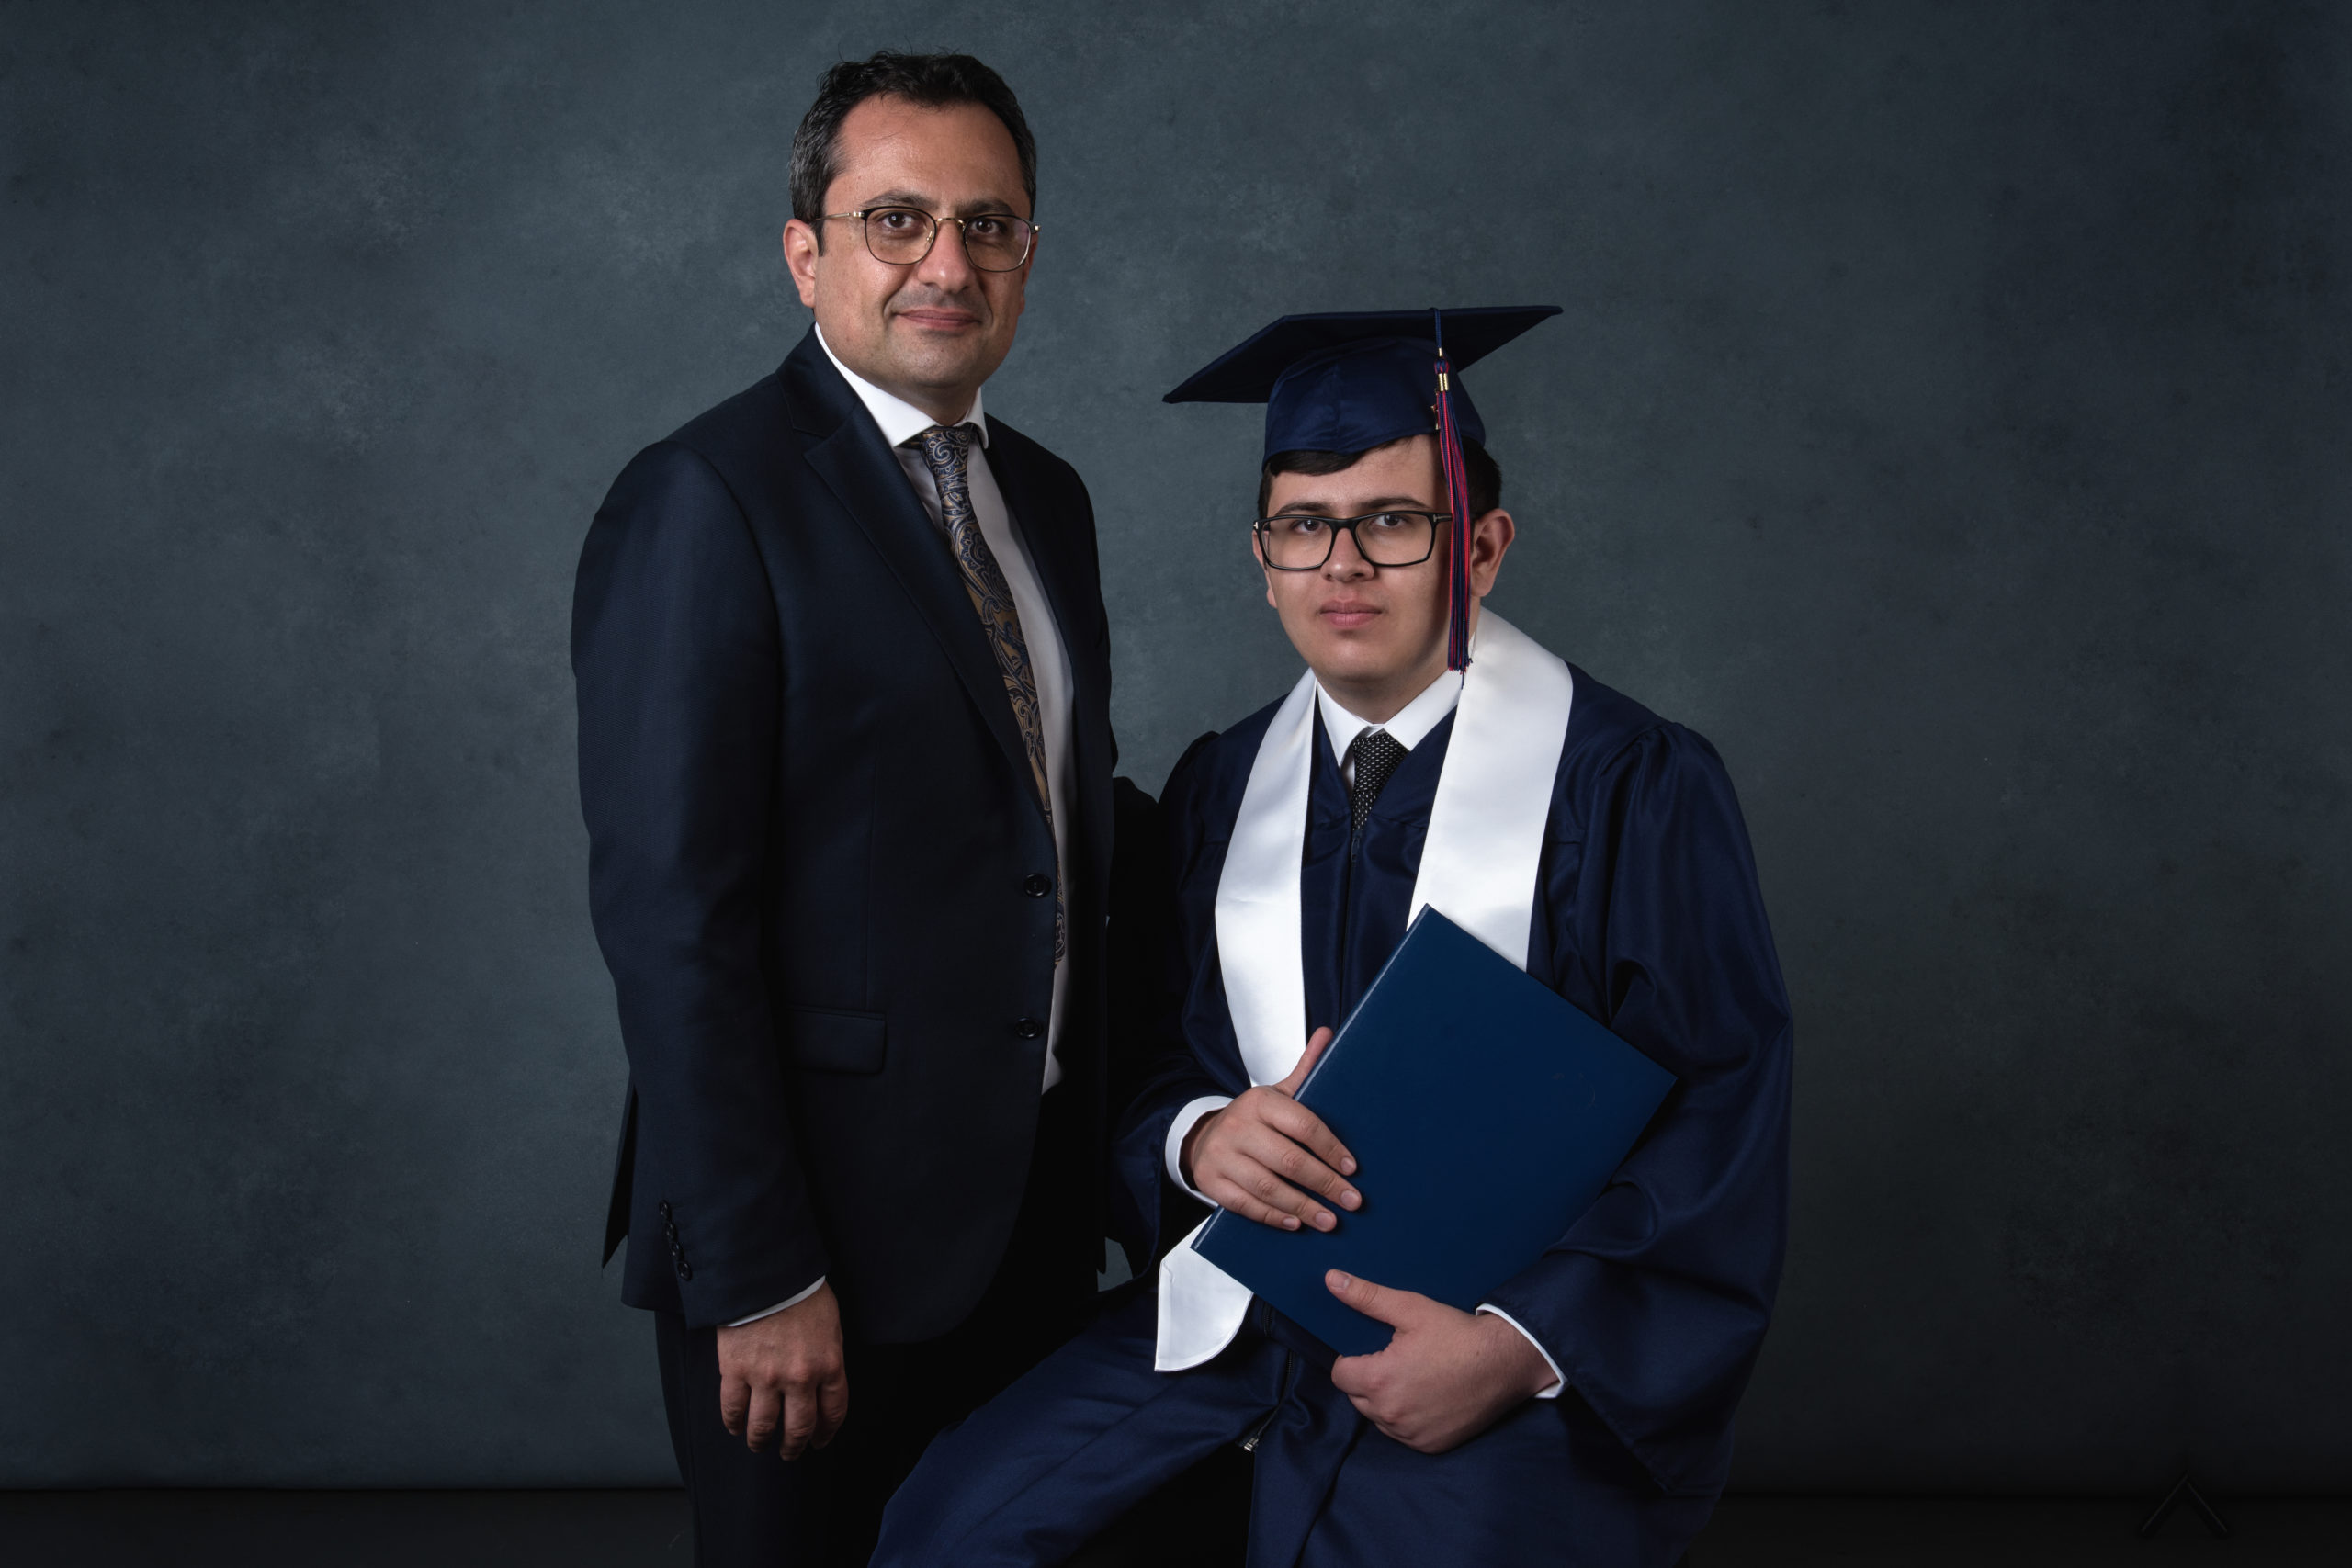 Graduation - father and son